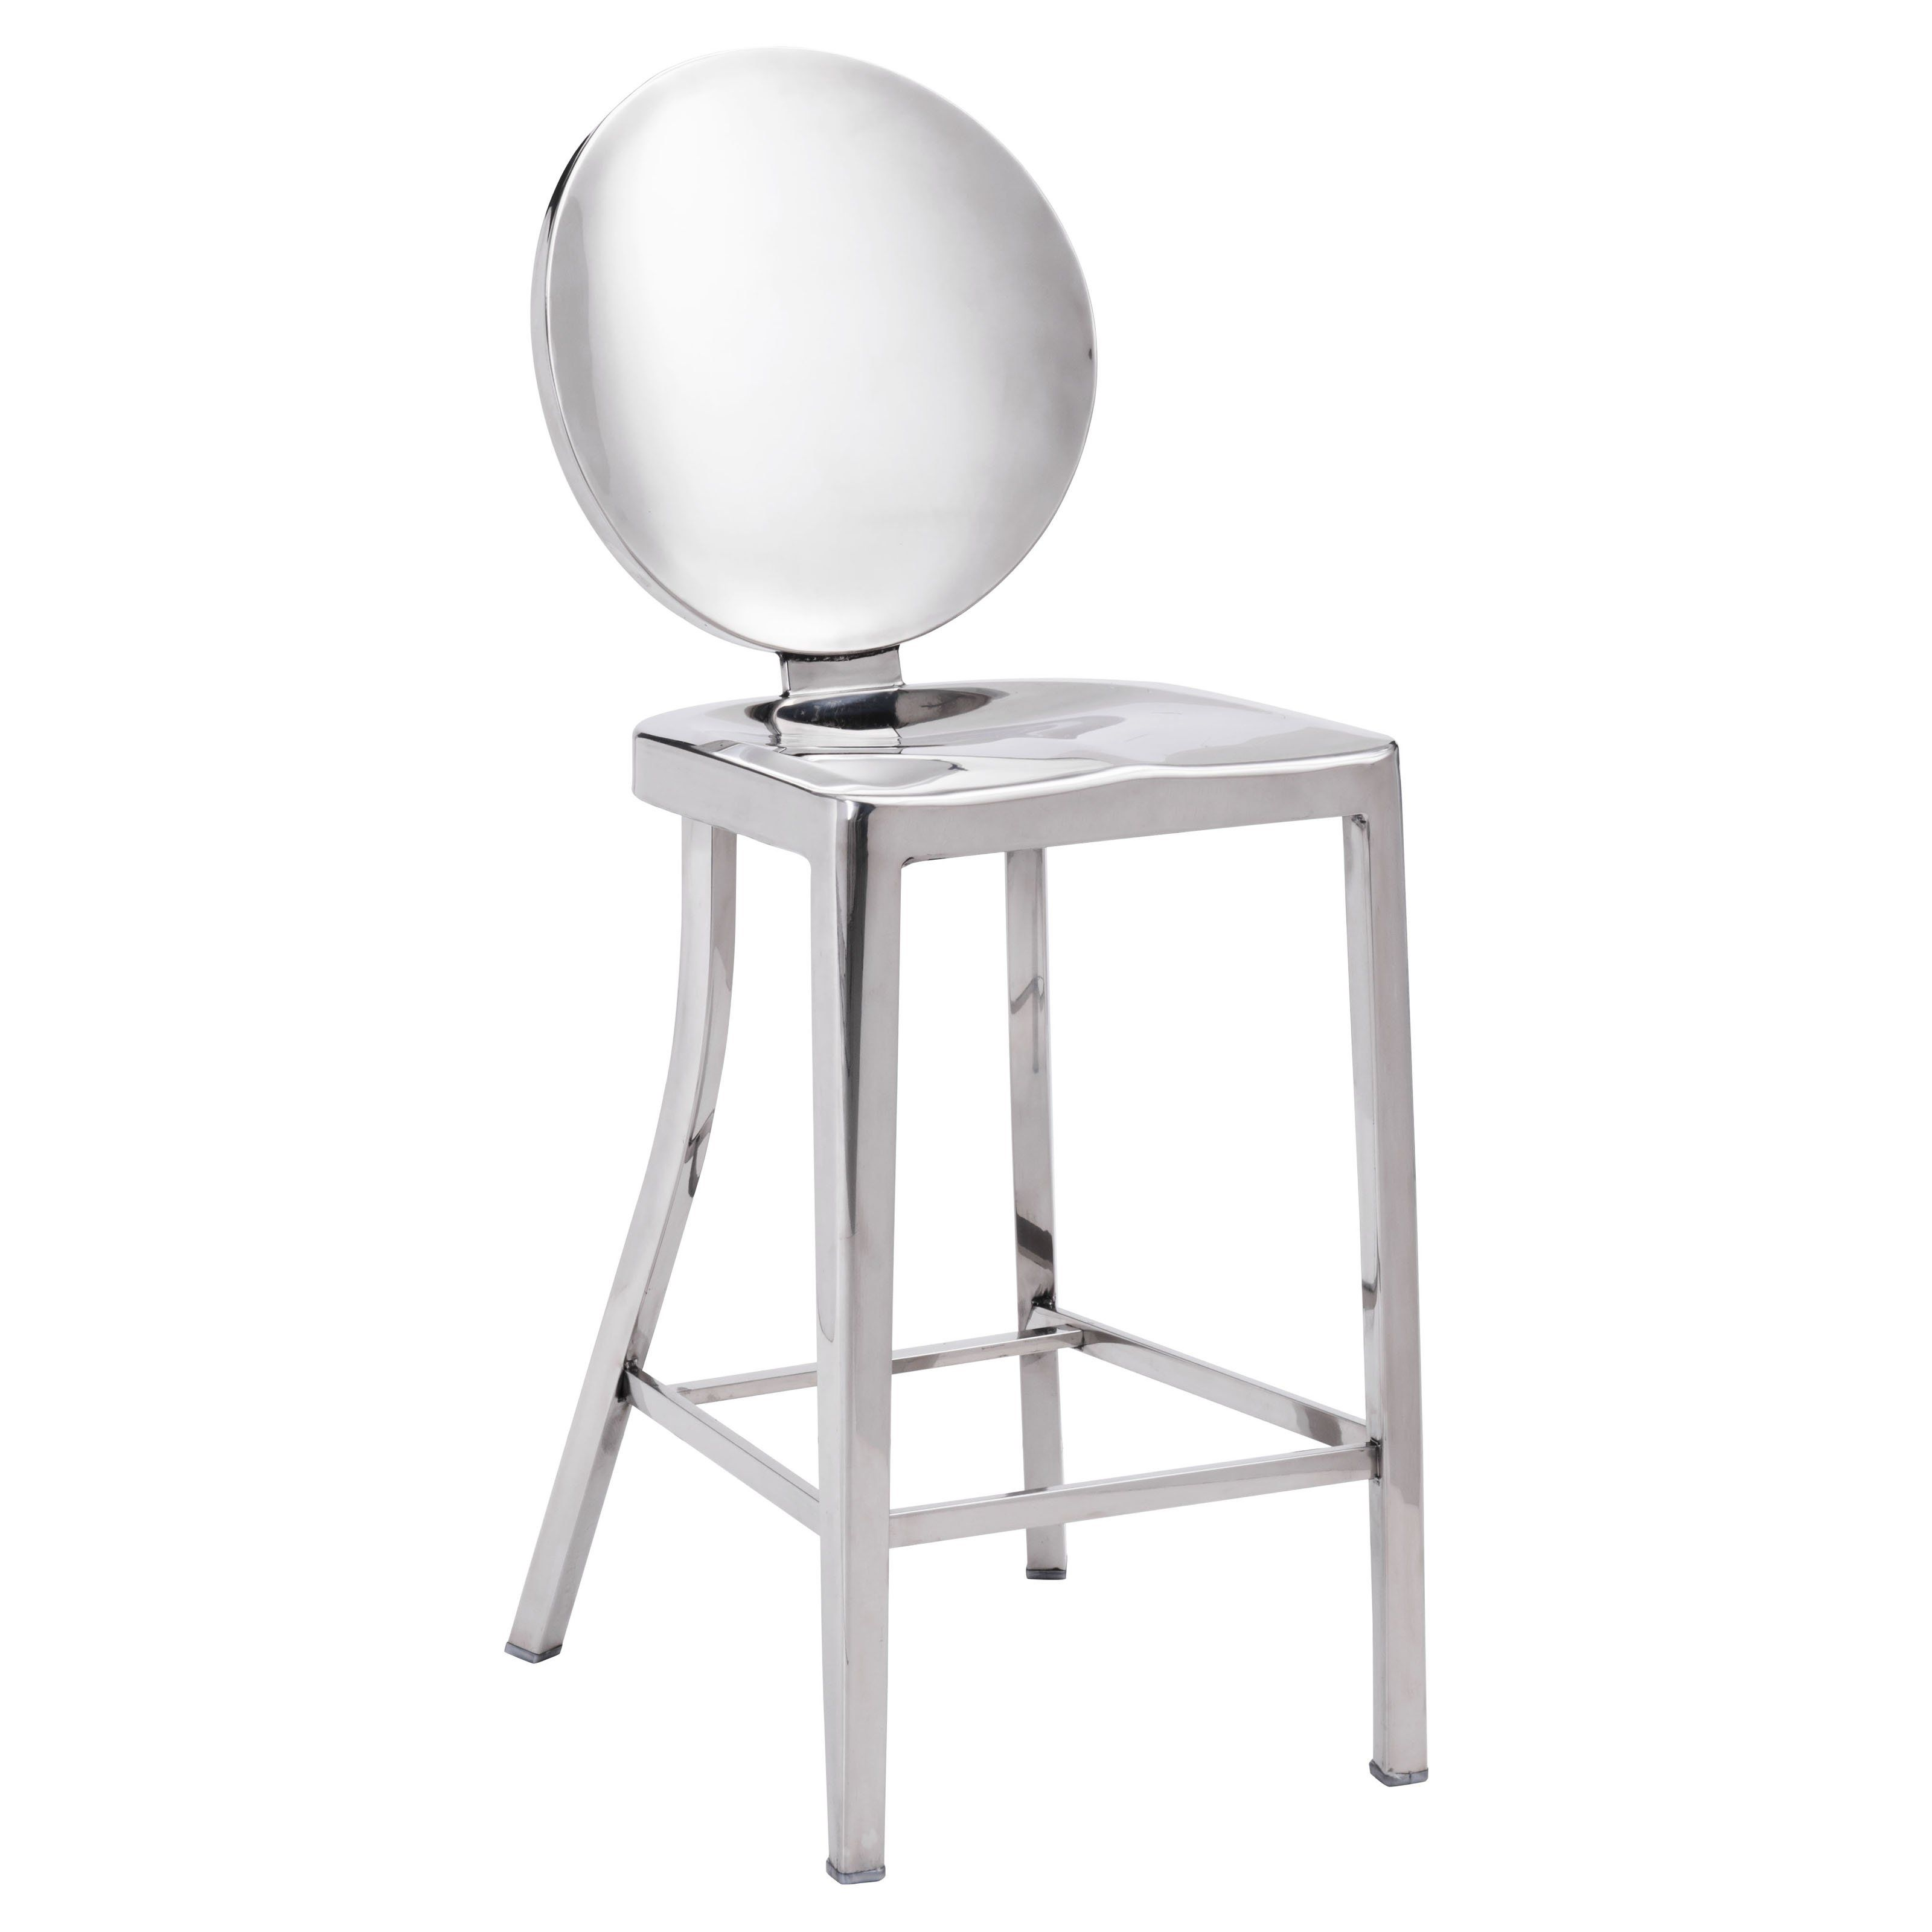 Zuo Modern Autumn Stainless Steel Counter Stool Set of 2